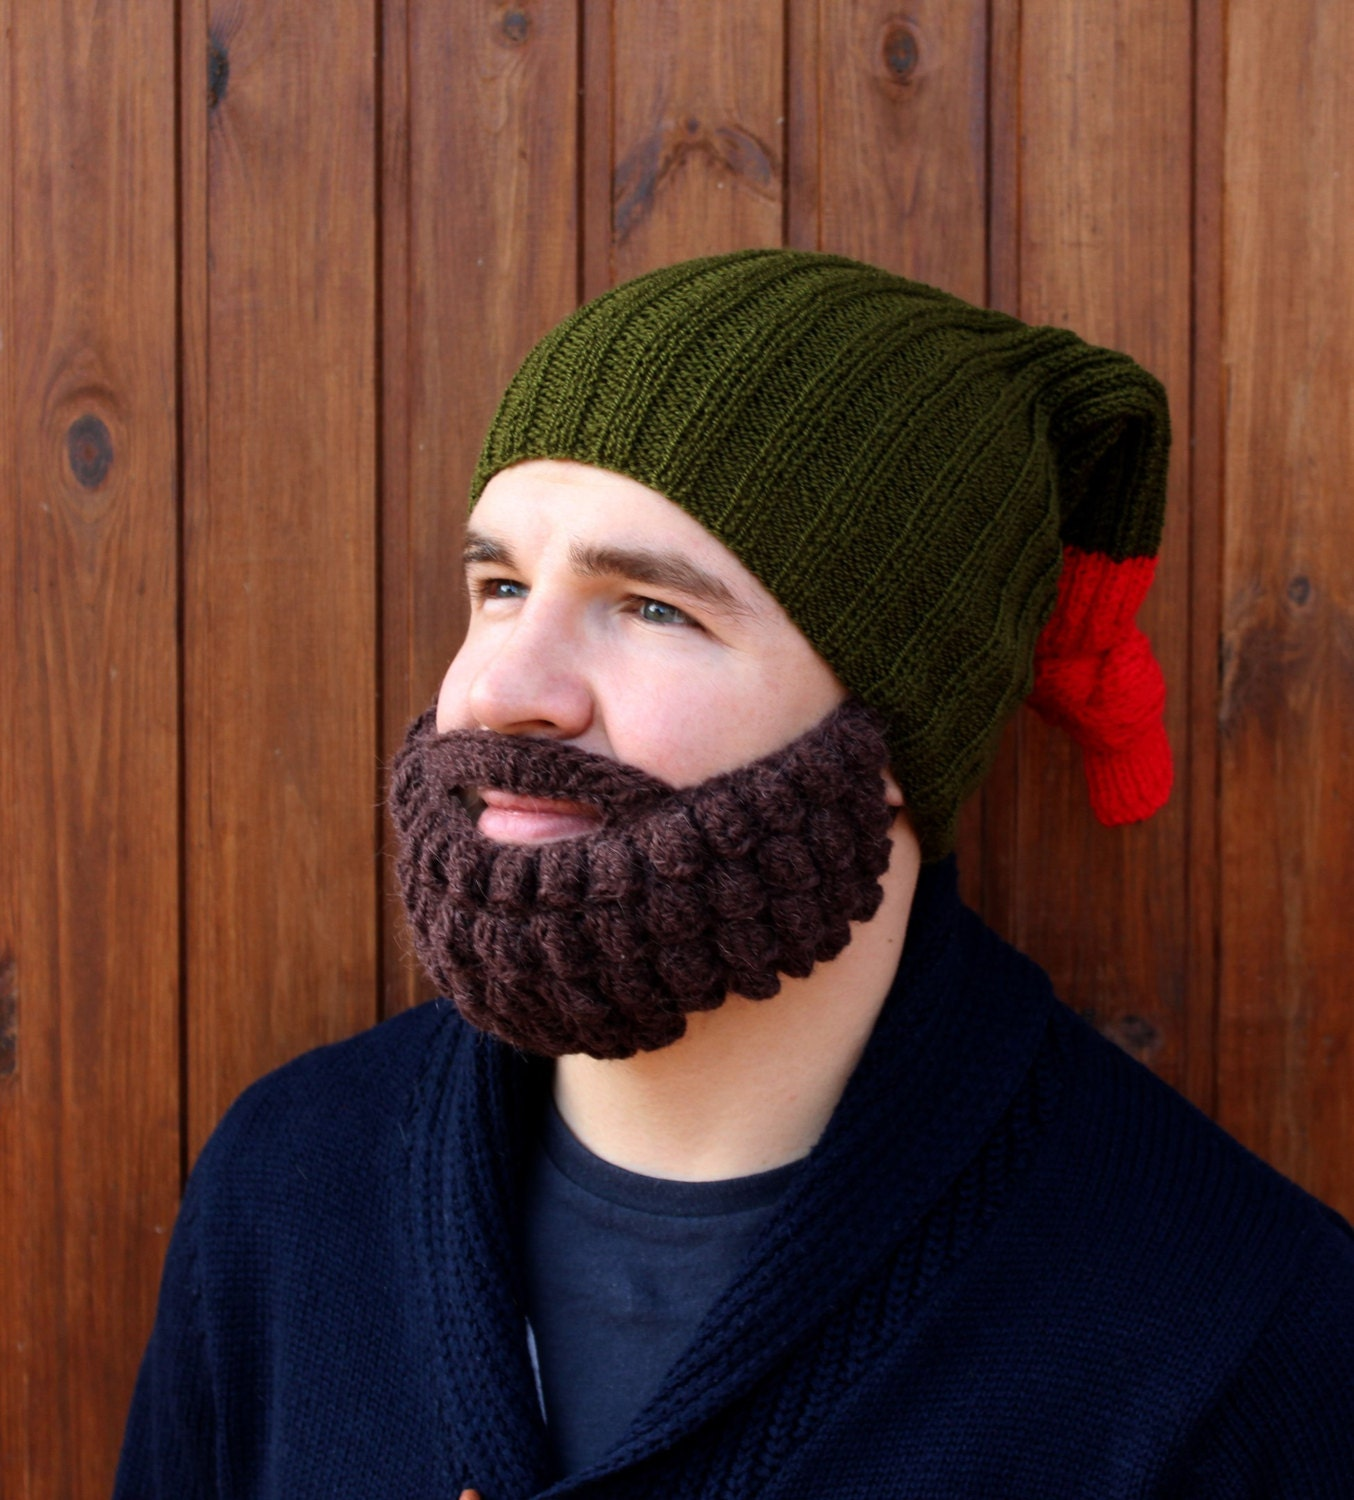 4b0f9e605a4 Crochet beard and hat Knitted face warmer Snowboard ski